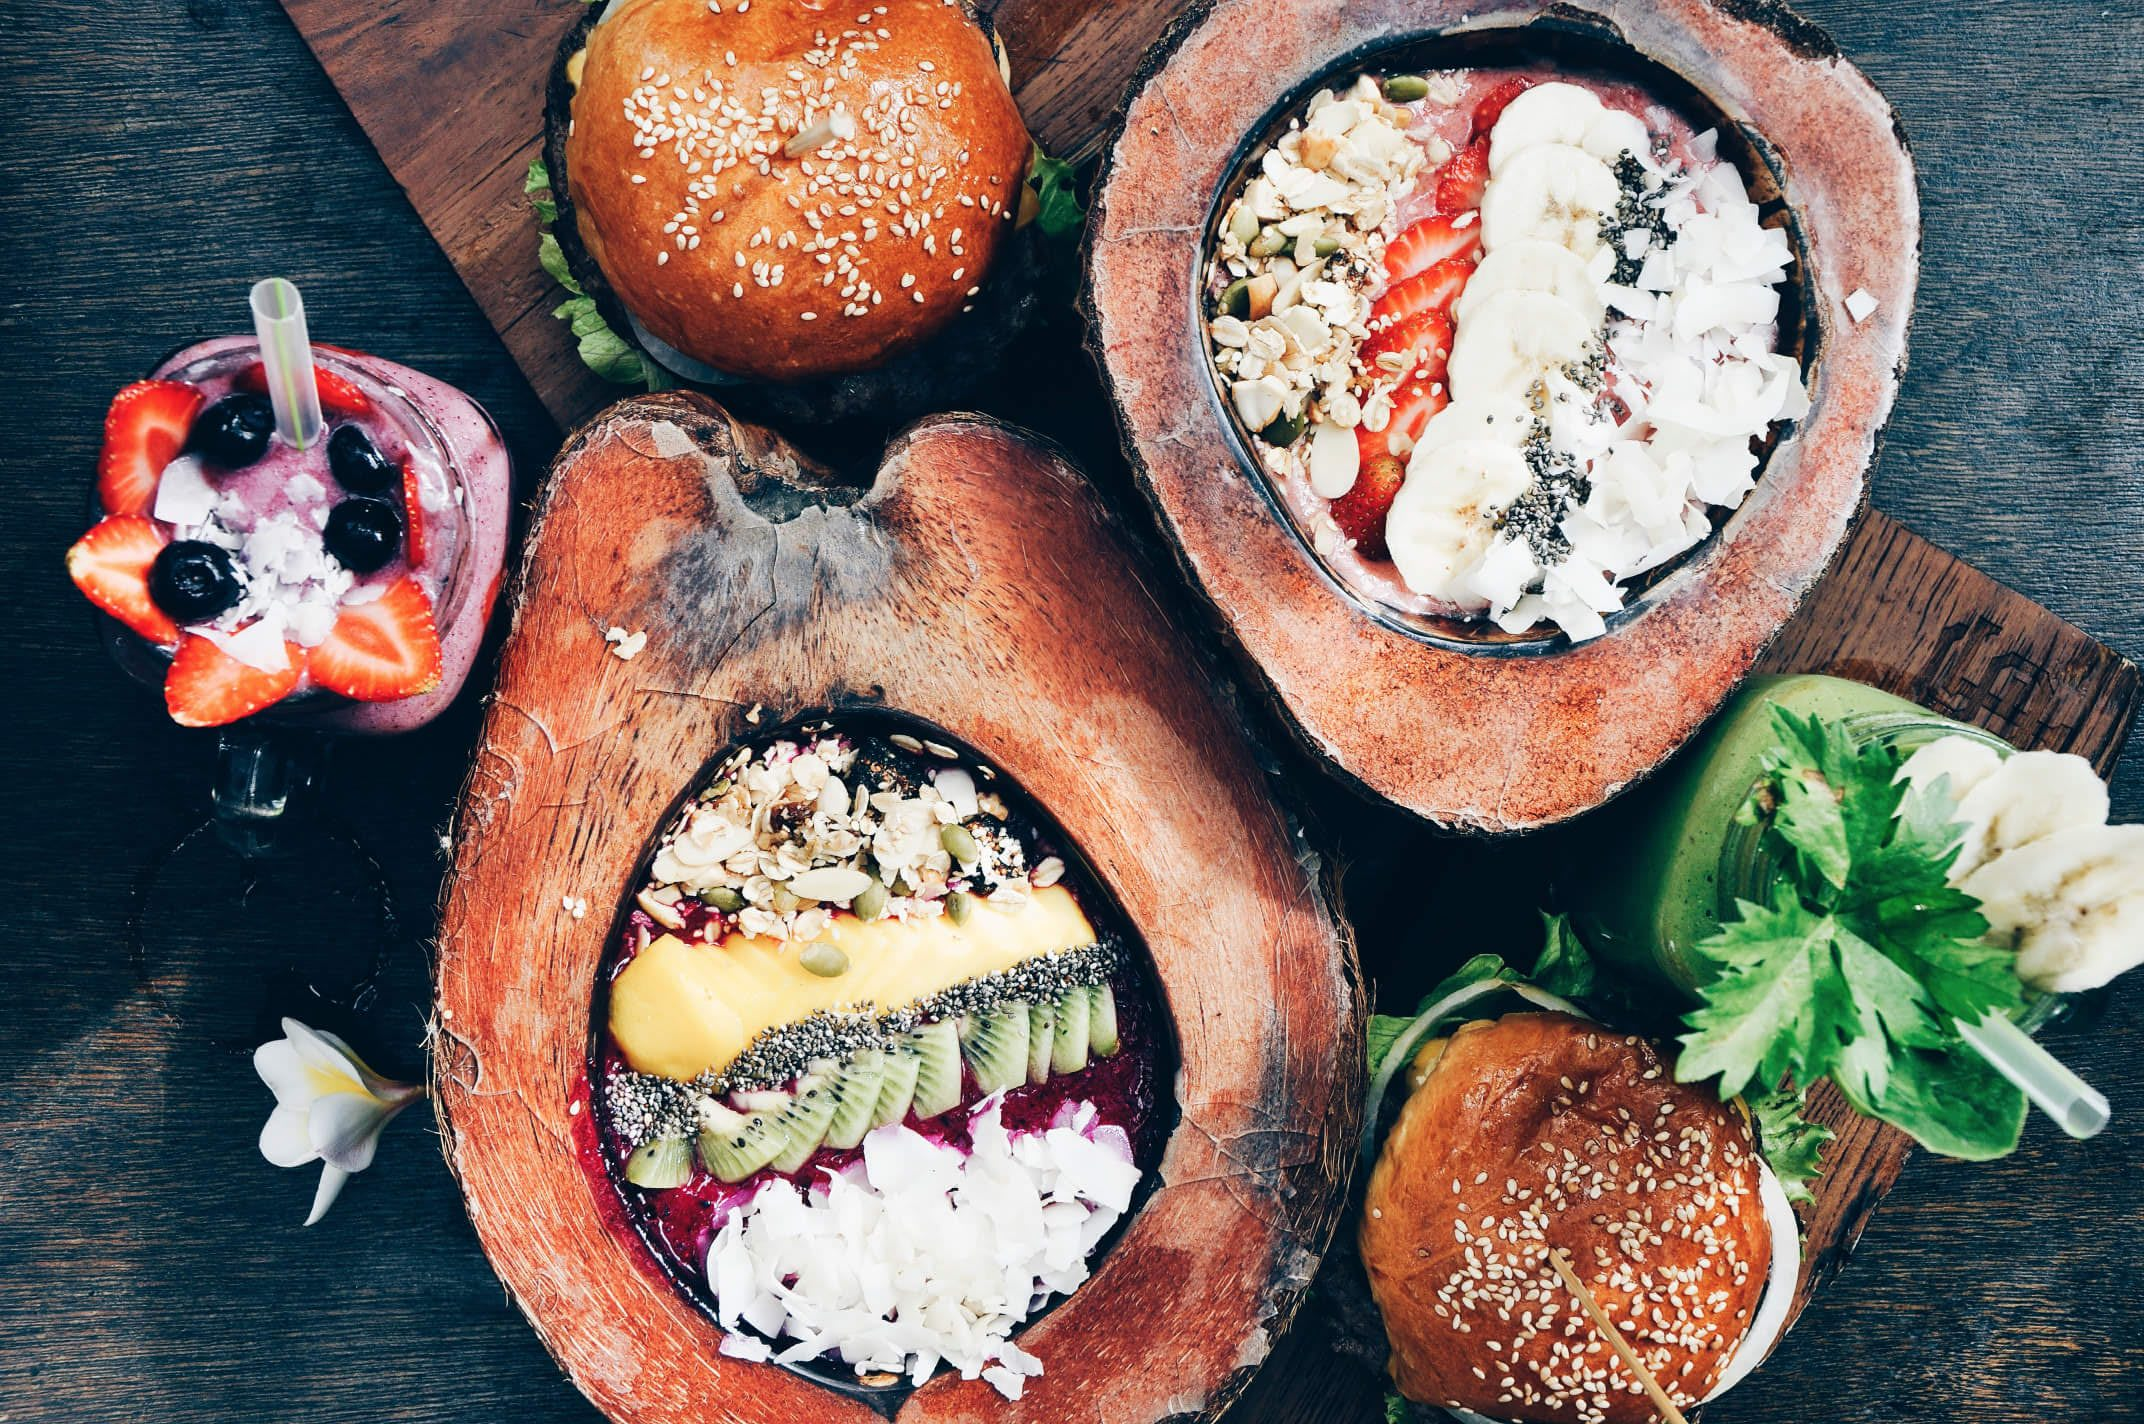 colourful Smoothie Bowls served in Coconut Bowls with burgers and Juices